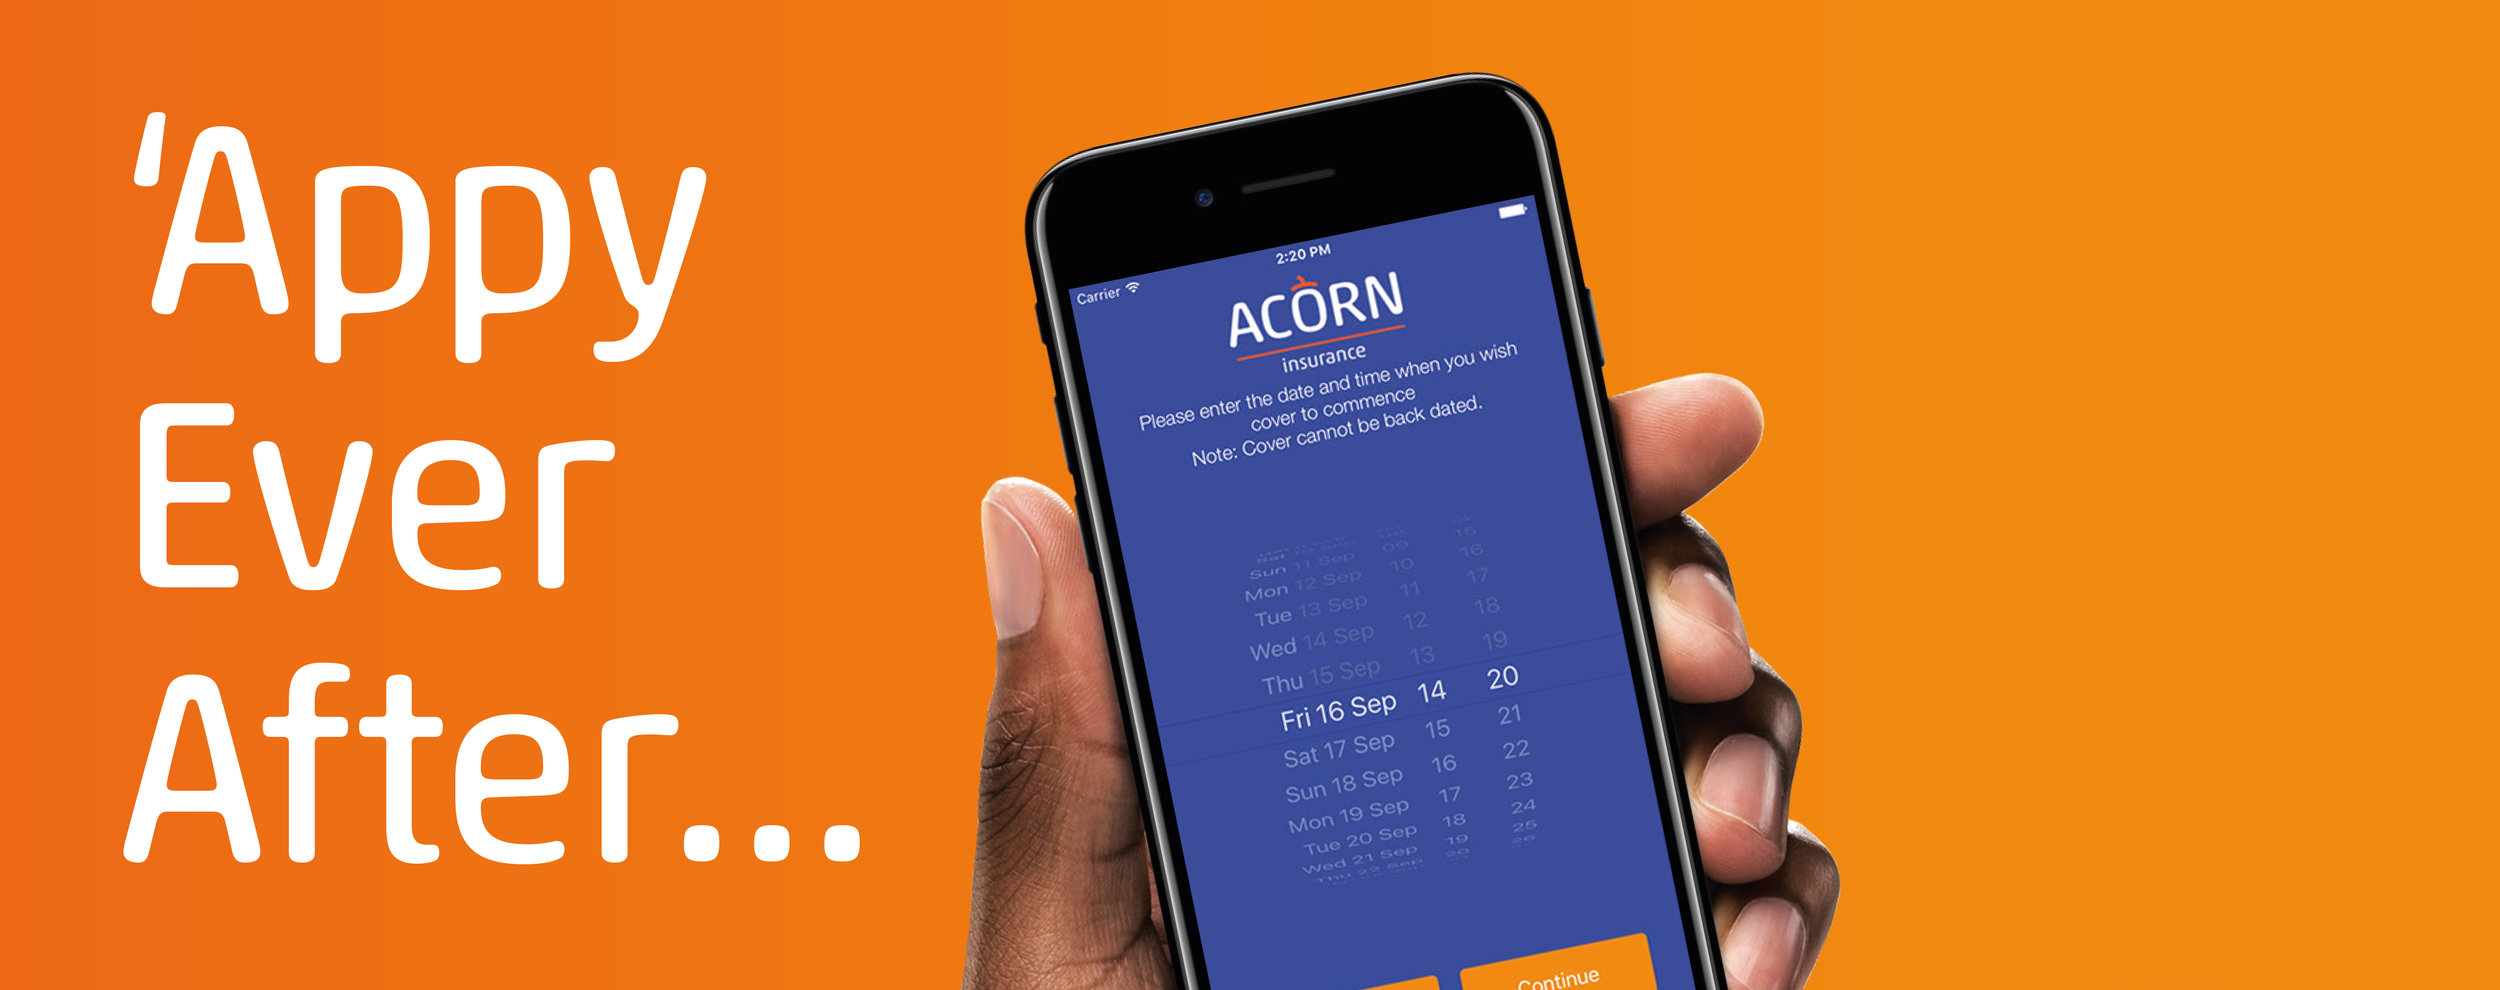 Acorn Appy ever after.jpg